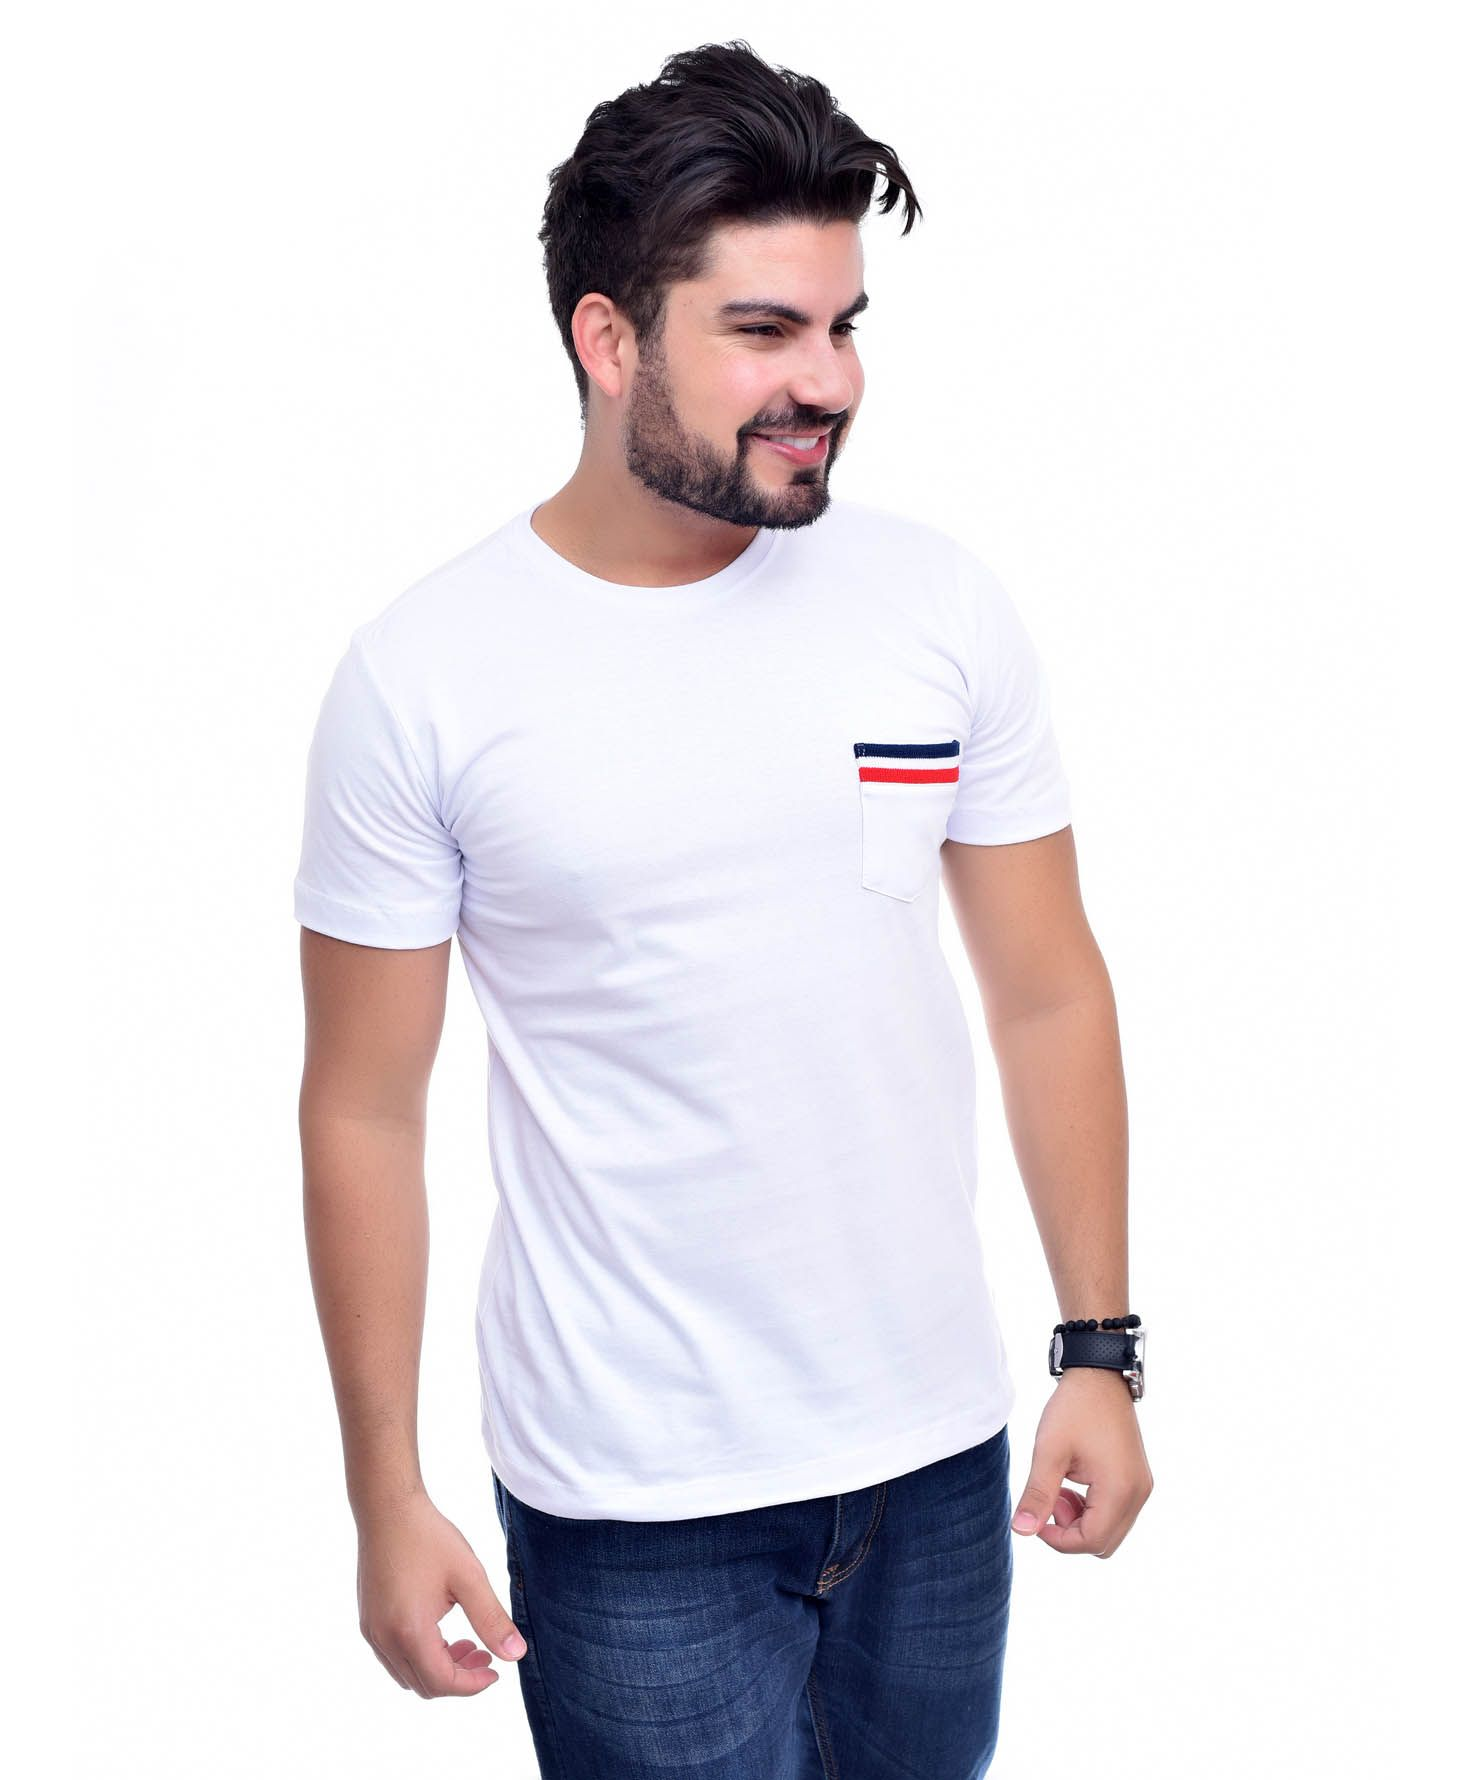 Camiseta Bolso TH Branco Top